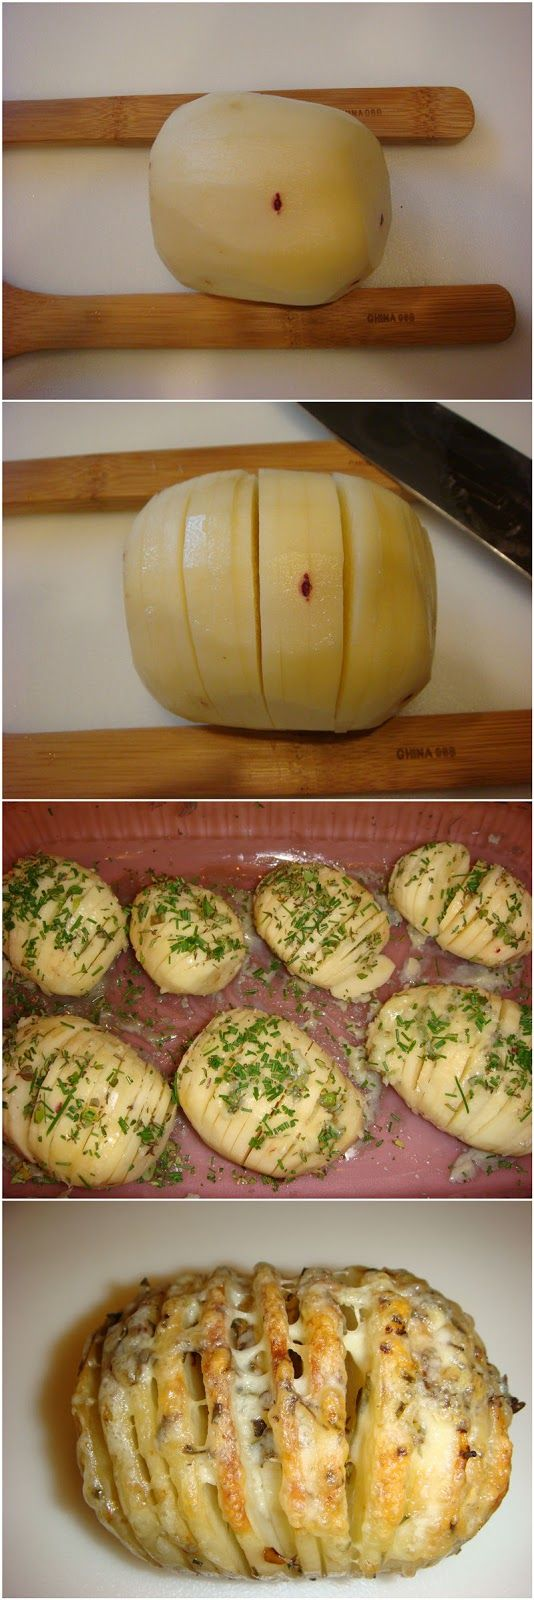 Sliced Baked Potatoes with Herbs and Cheese